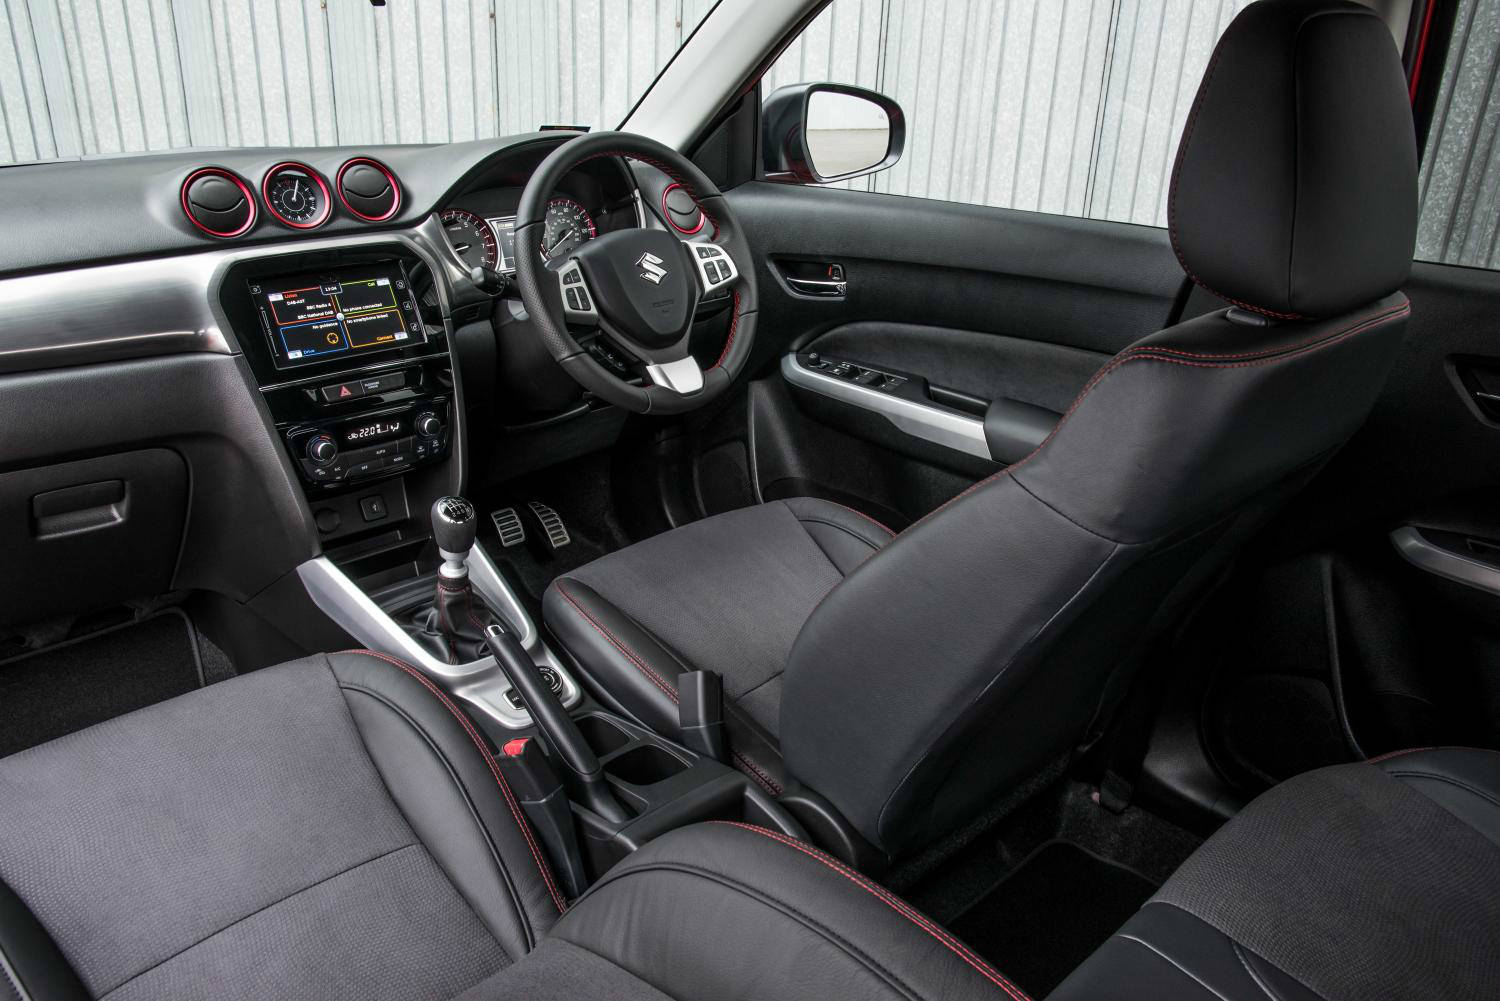 blog/205/Suzuki Vitara interior